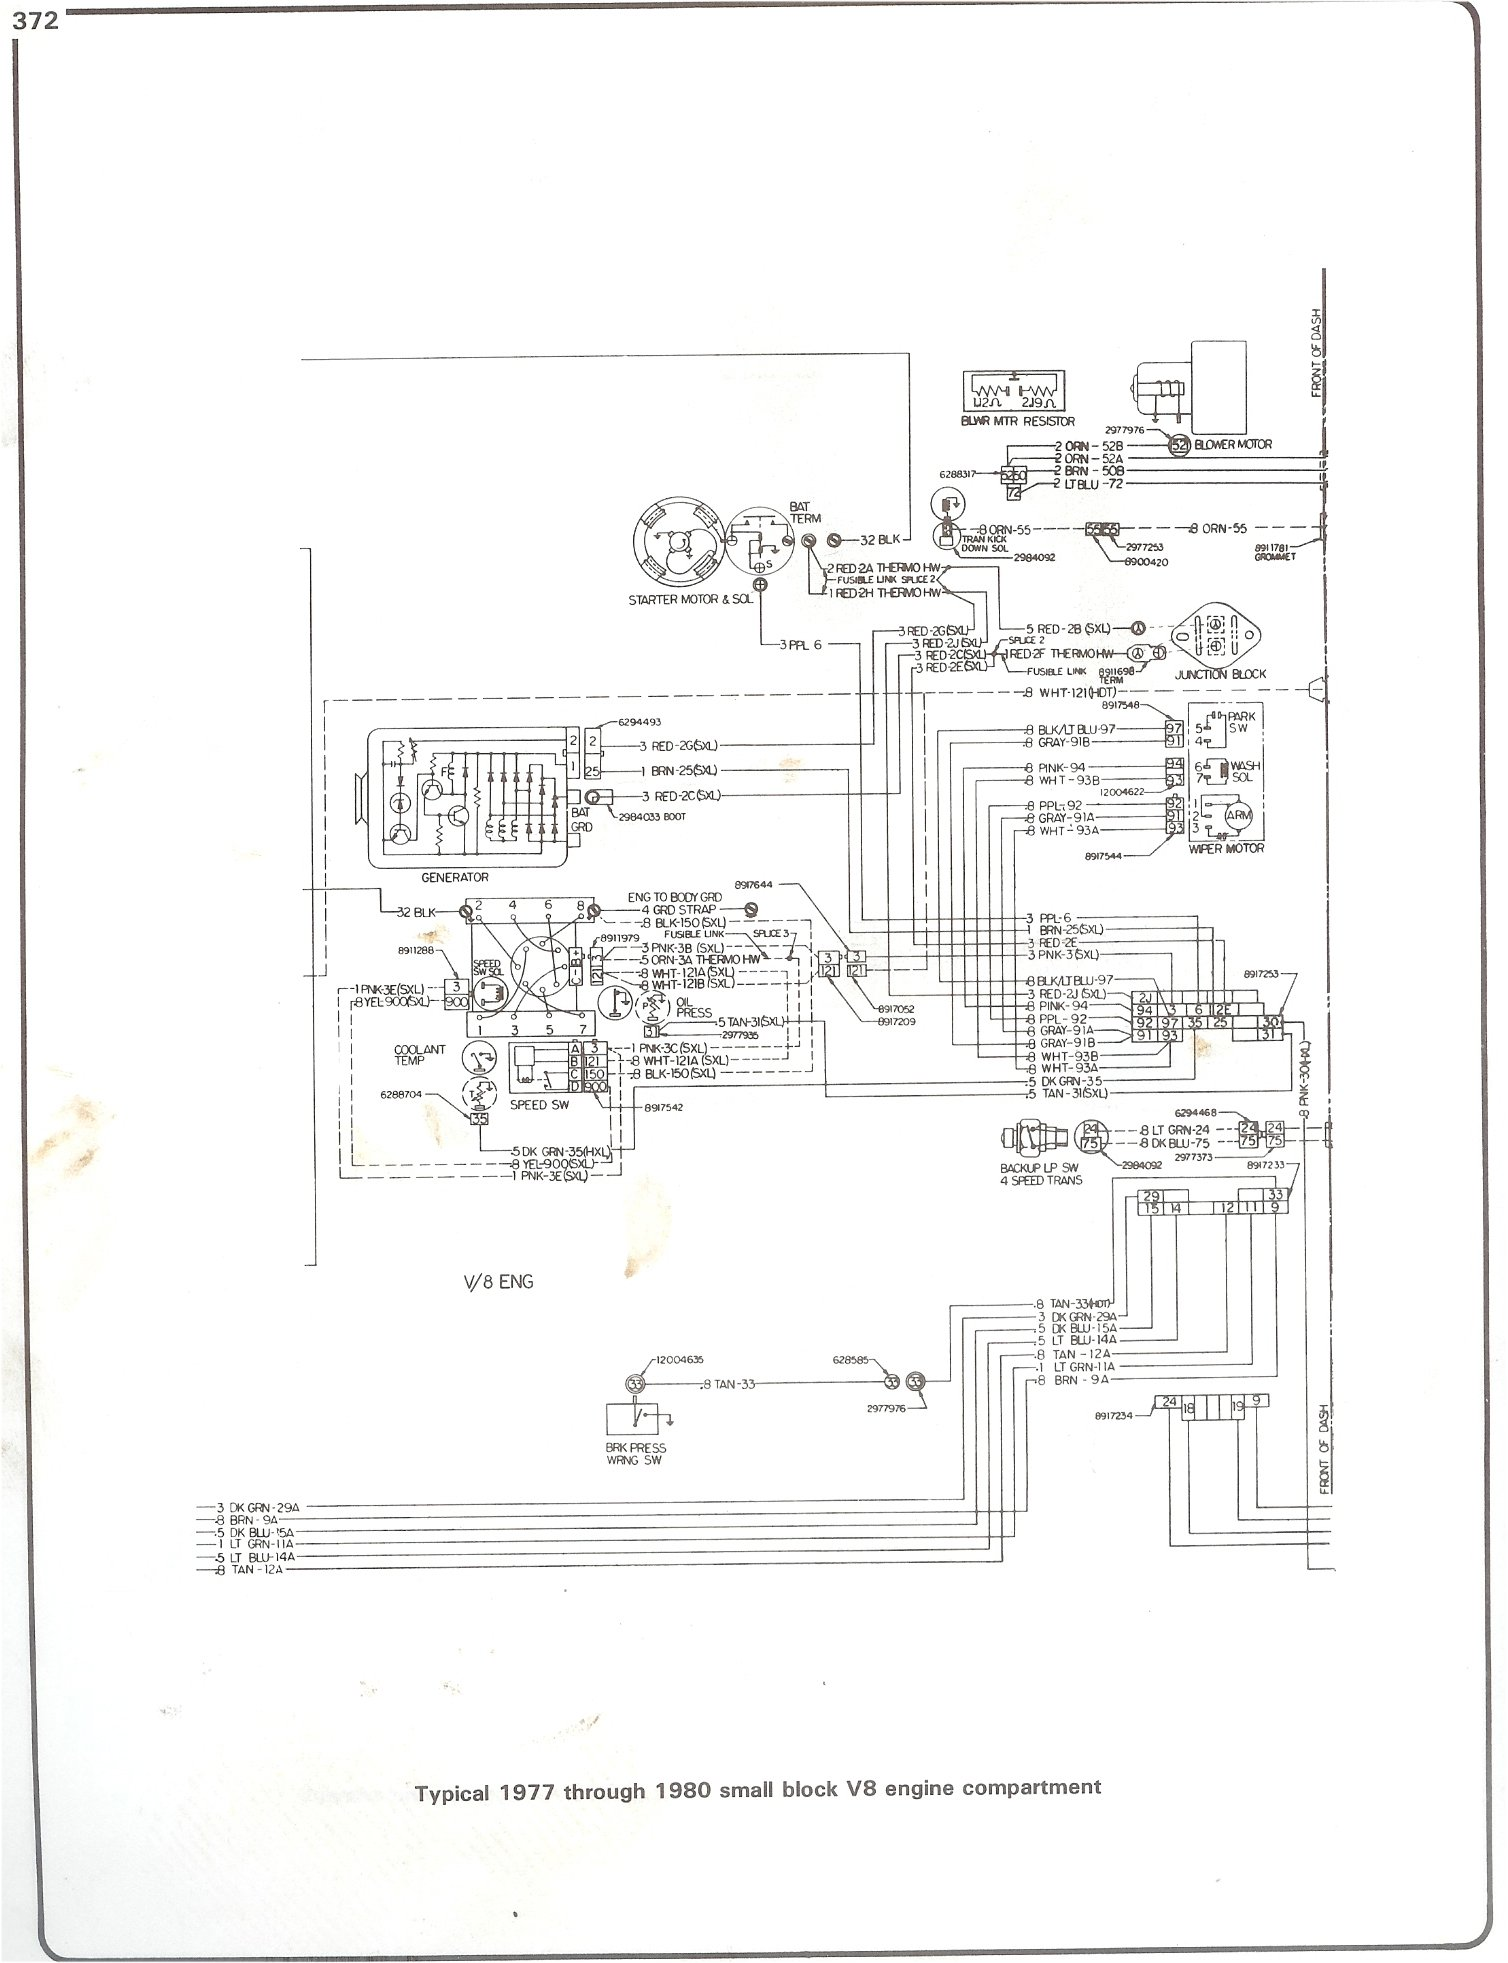 Complete 73 87 Wiring Diagrams 1988 Gmc Sierra 1500 305 V8 Fuse Box Diagram 77 80 Sbc Engine